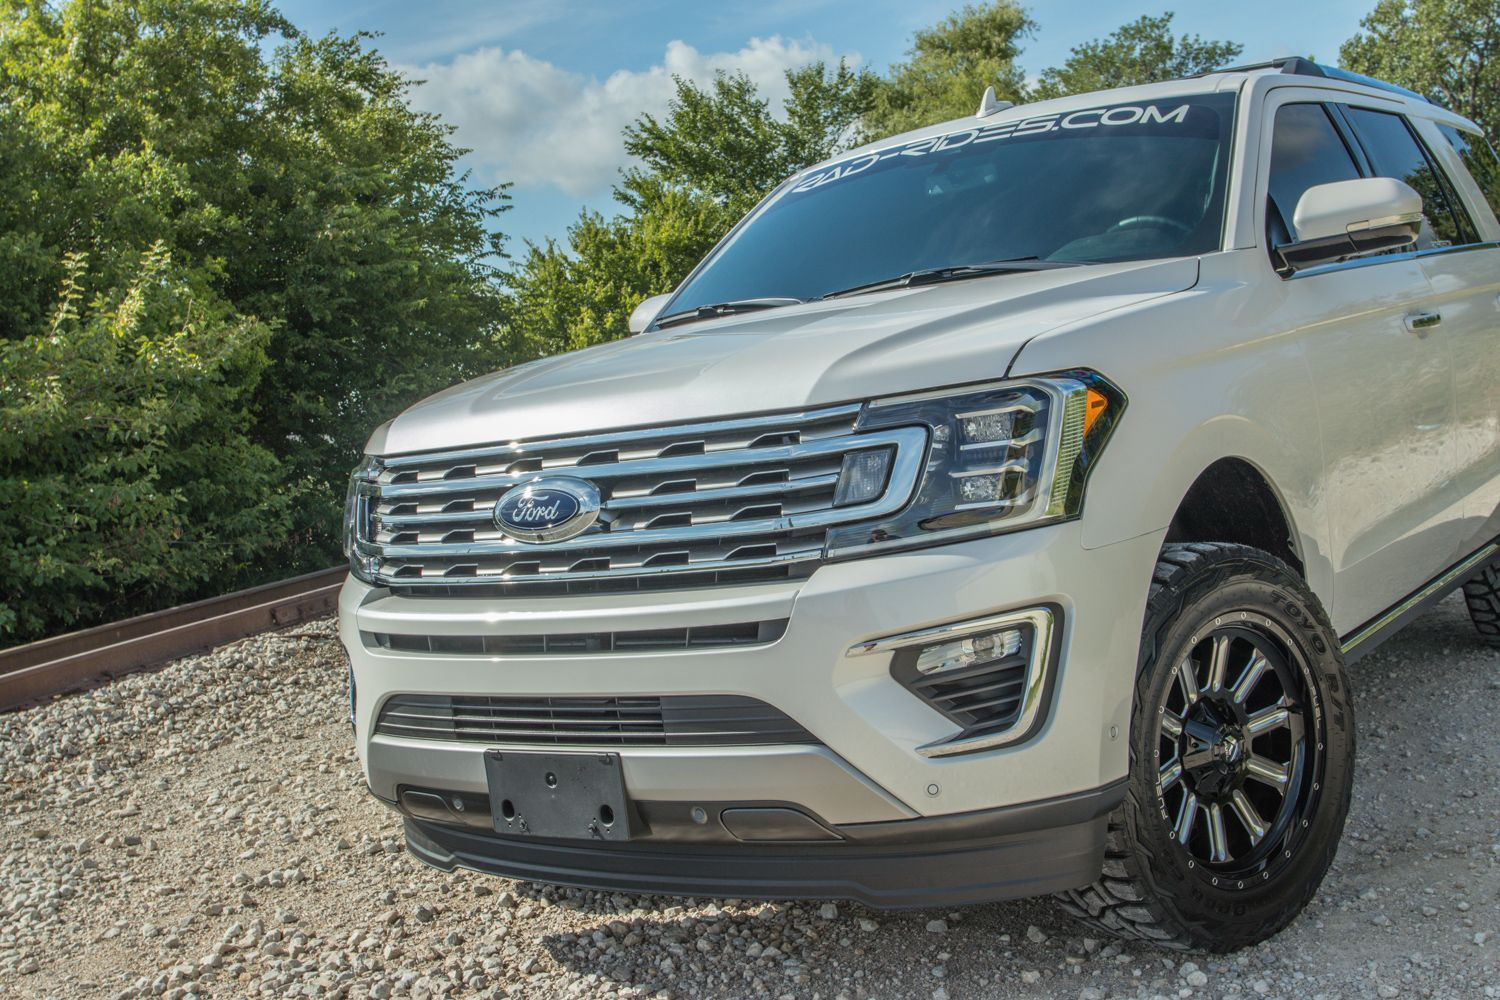 Lifted 2018 Ford Expedition New Suv With 20 Inch Fuel Wheels In White Platinum Metallic Tri Coat Ford Expedition Lifted Ford Explorer Ford